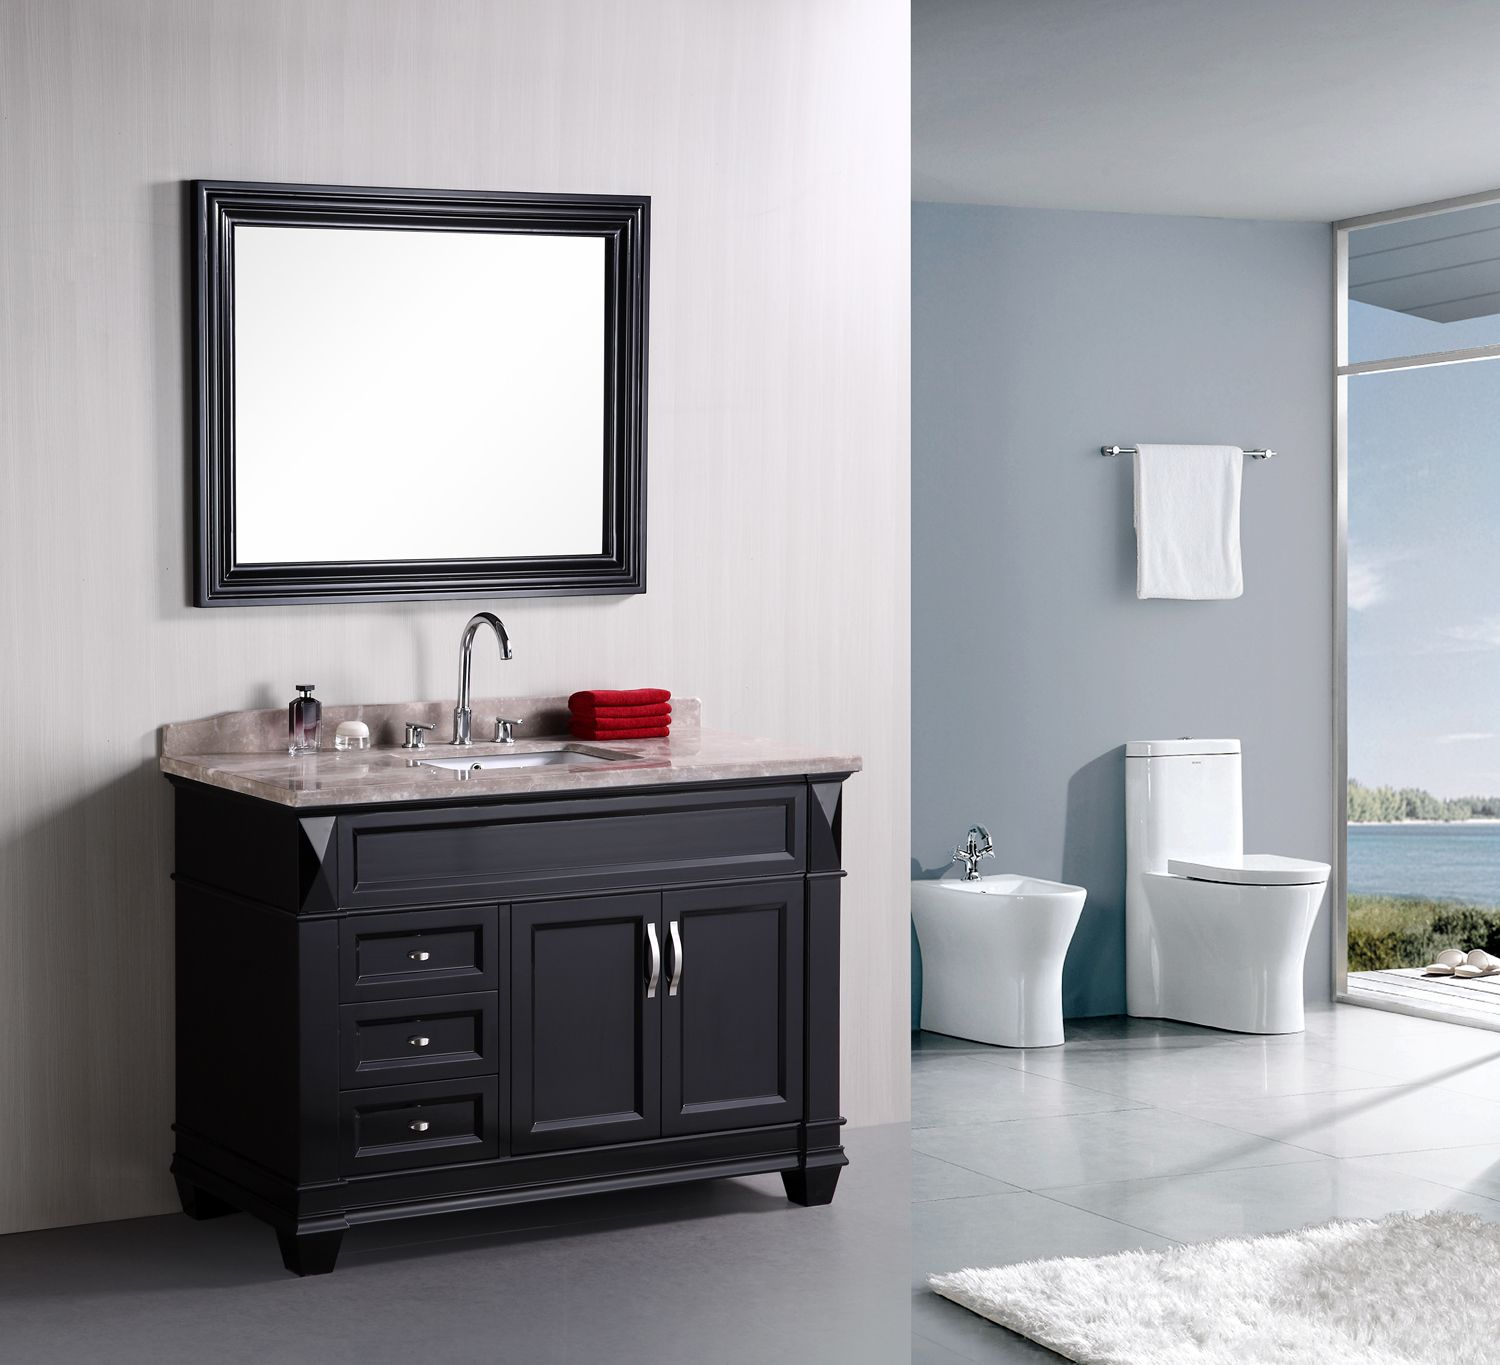 Pin By Bathrooms Direct On Design Element Bathroom